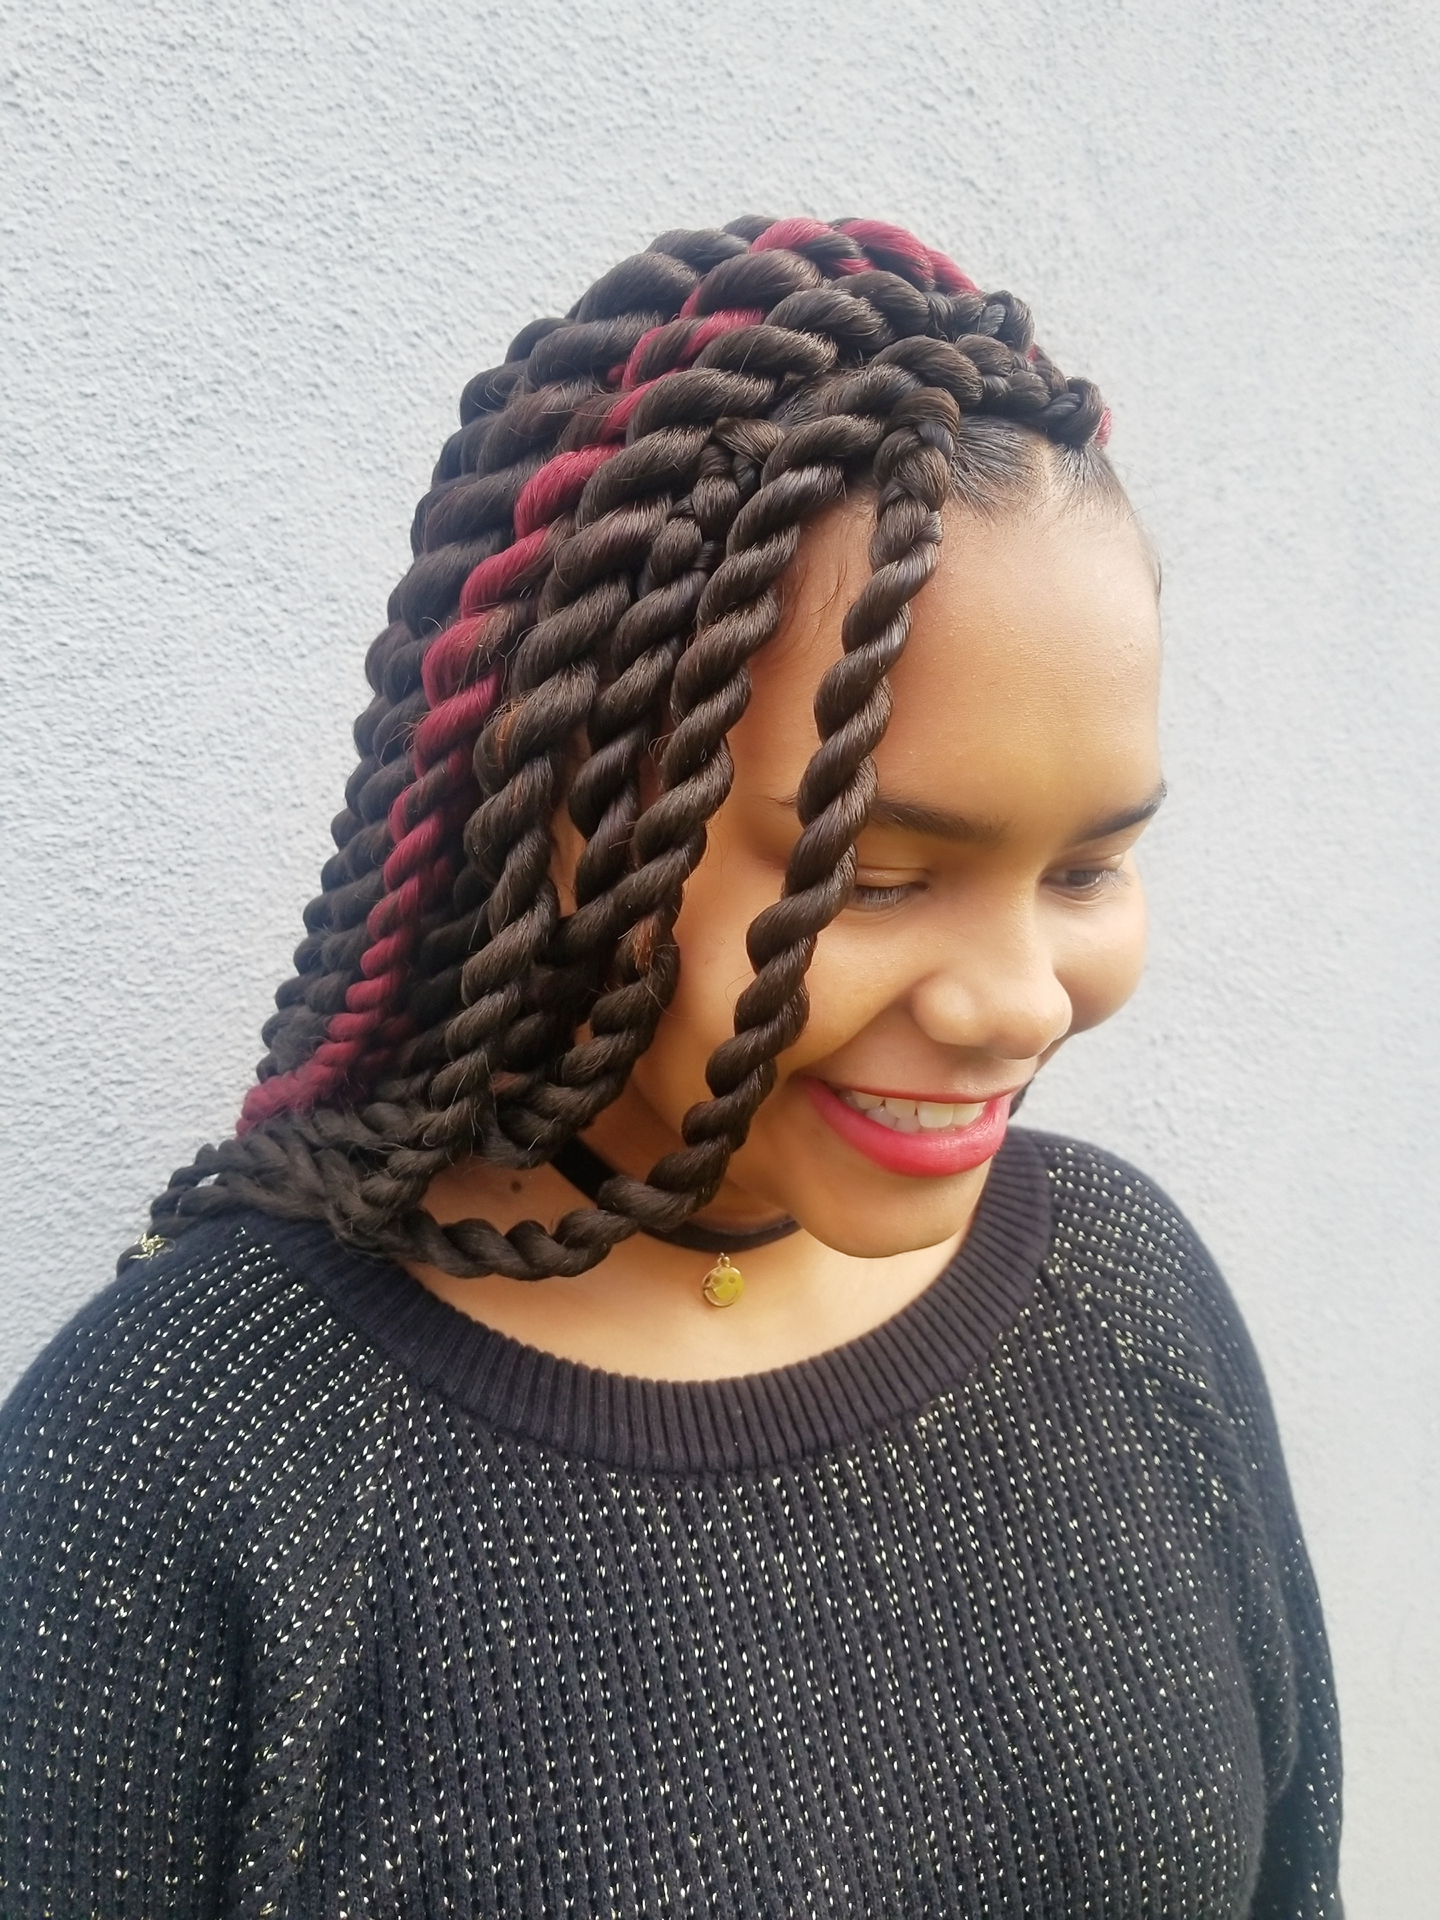 Widely Used Dookie Braid Bump Hairstyles In Here's Everything You Need To Know About Getting Braids (Gallery 12 of 20)